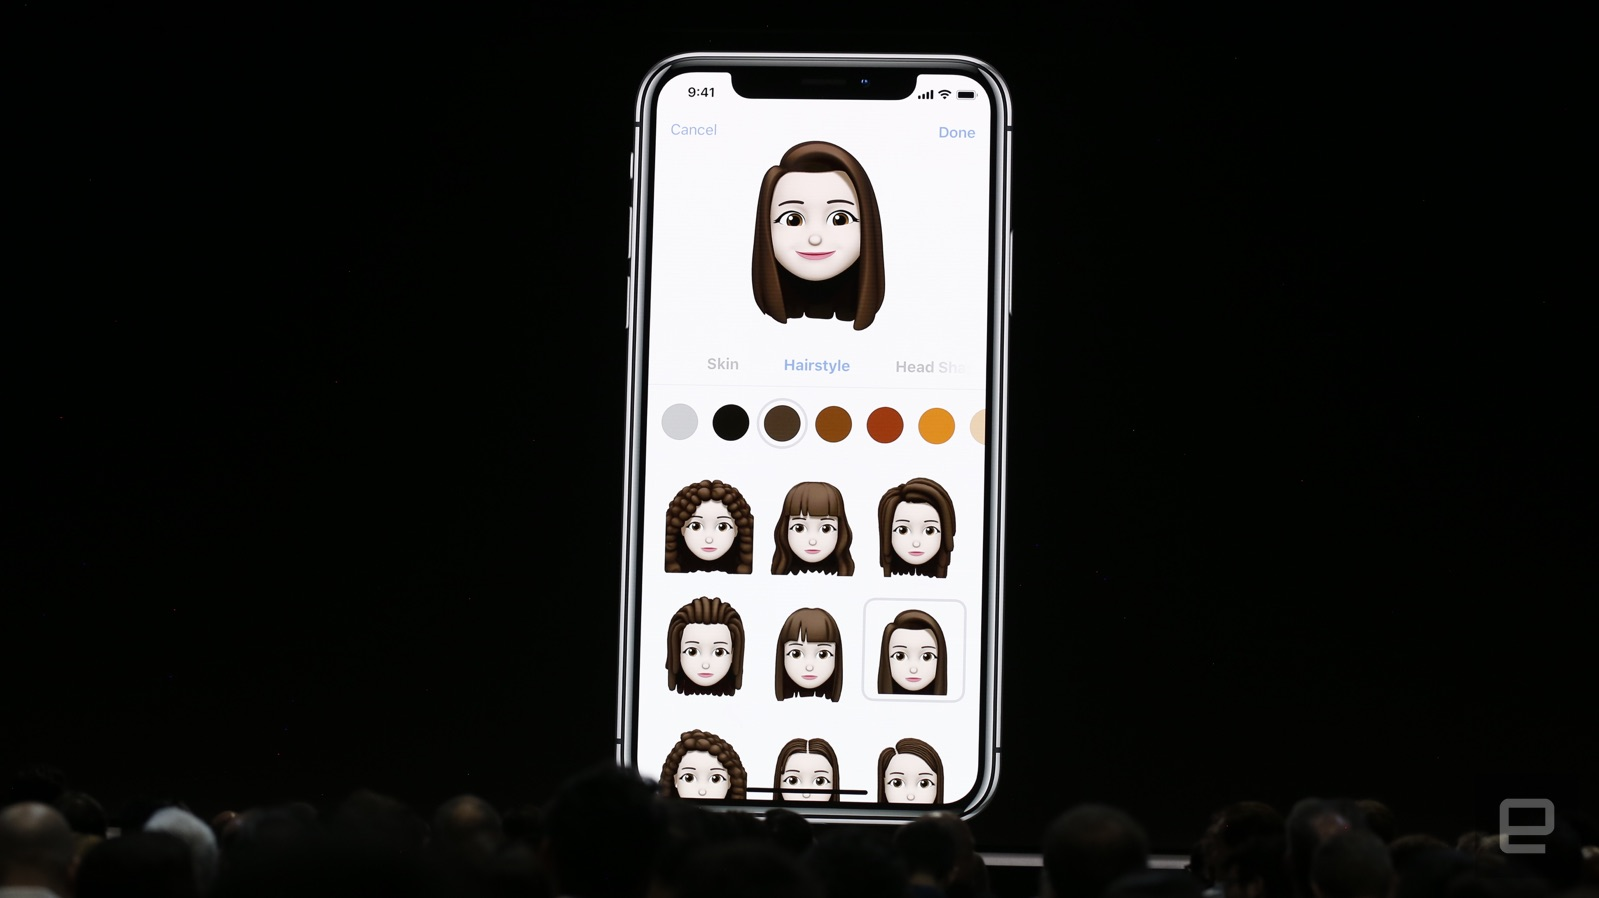 WWDC 18: iOS 12 Introduces Group FaceTime And Memoji